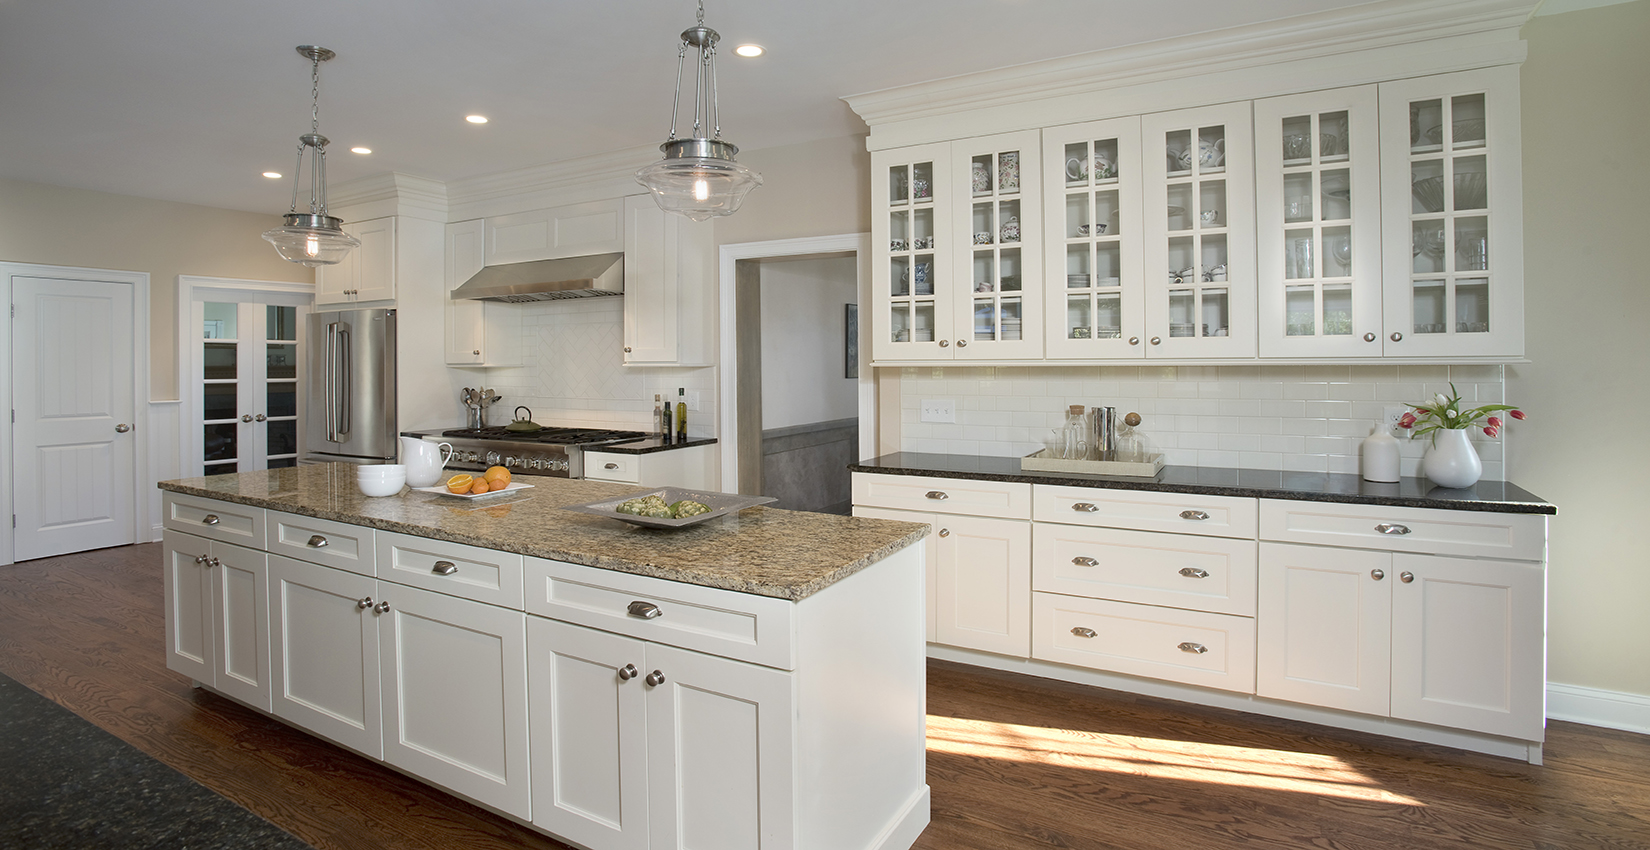 Bright remodeled kitchen by clark construction in Fairfield County